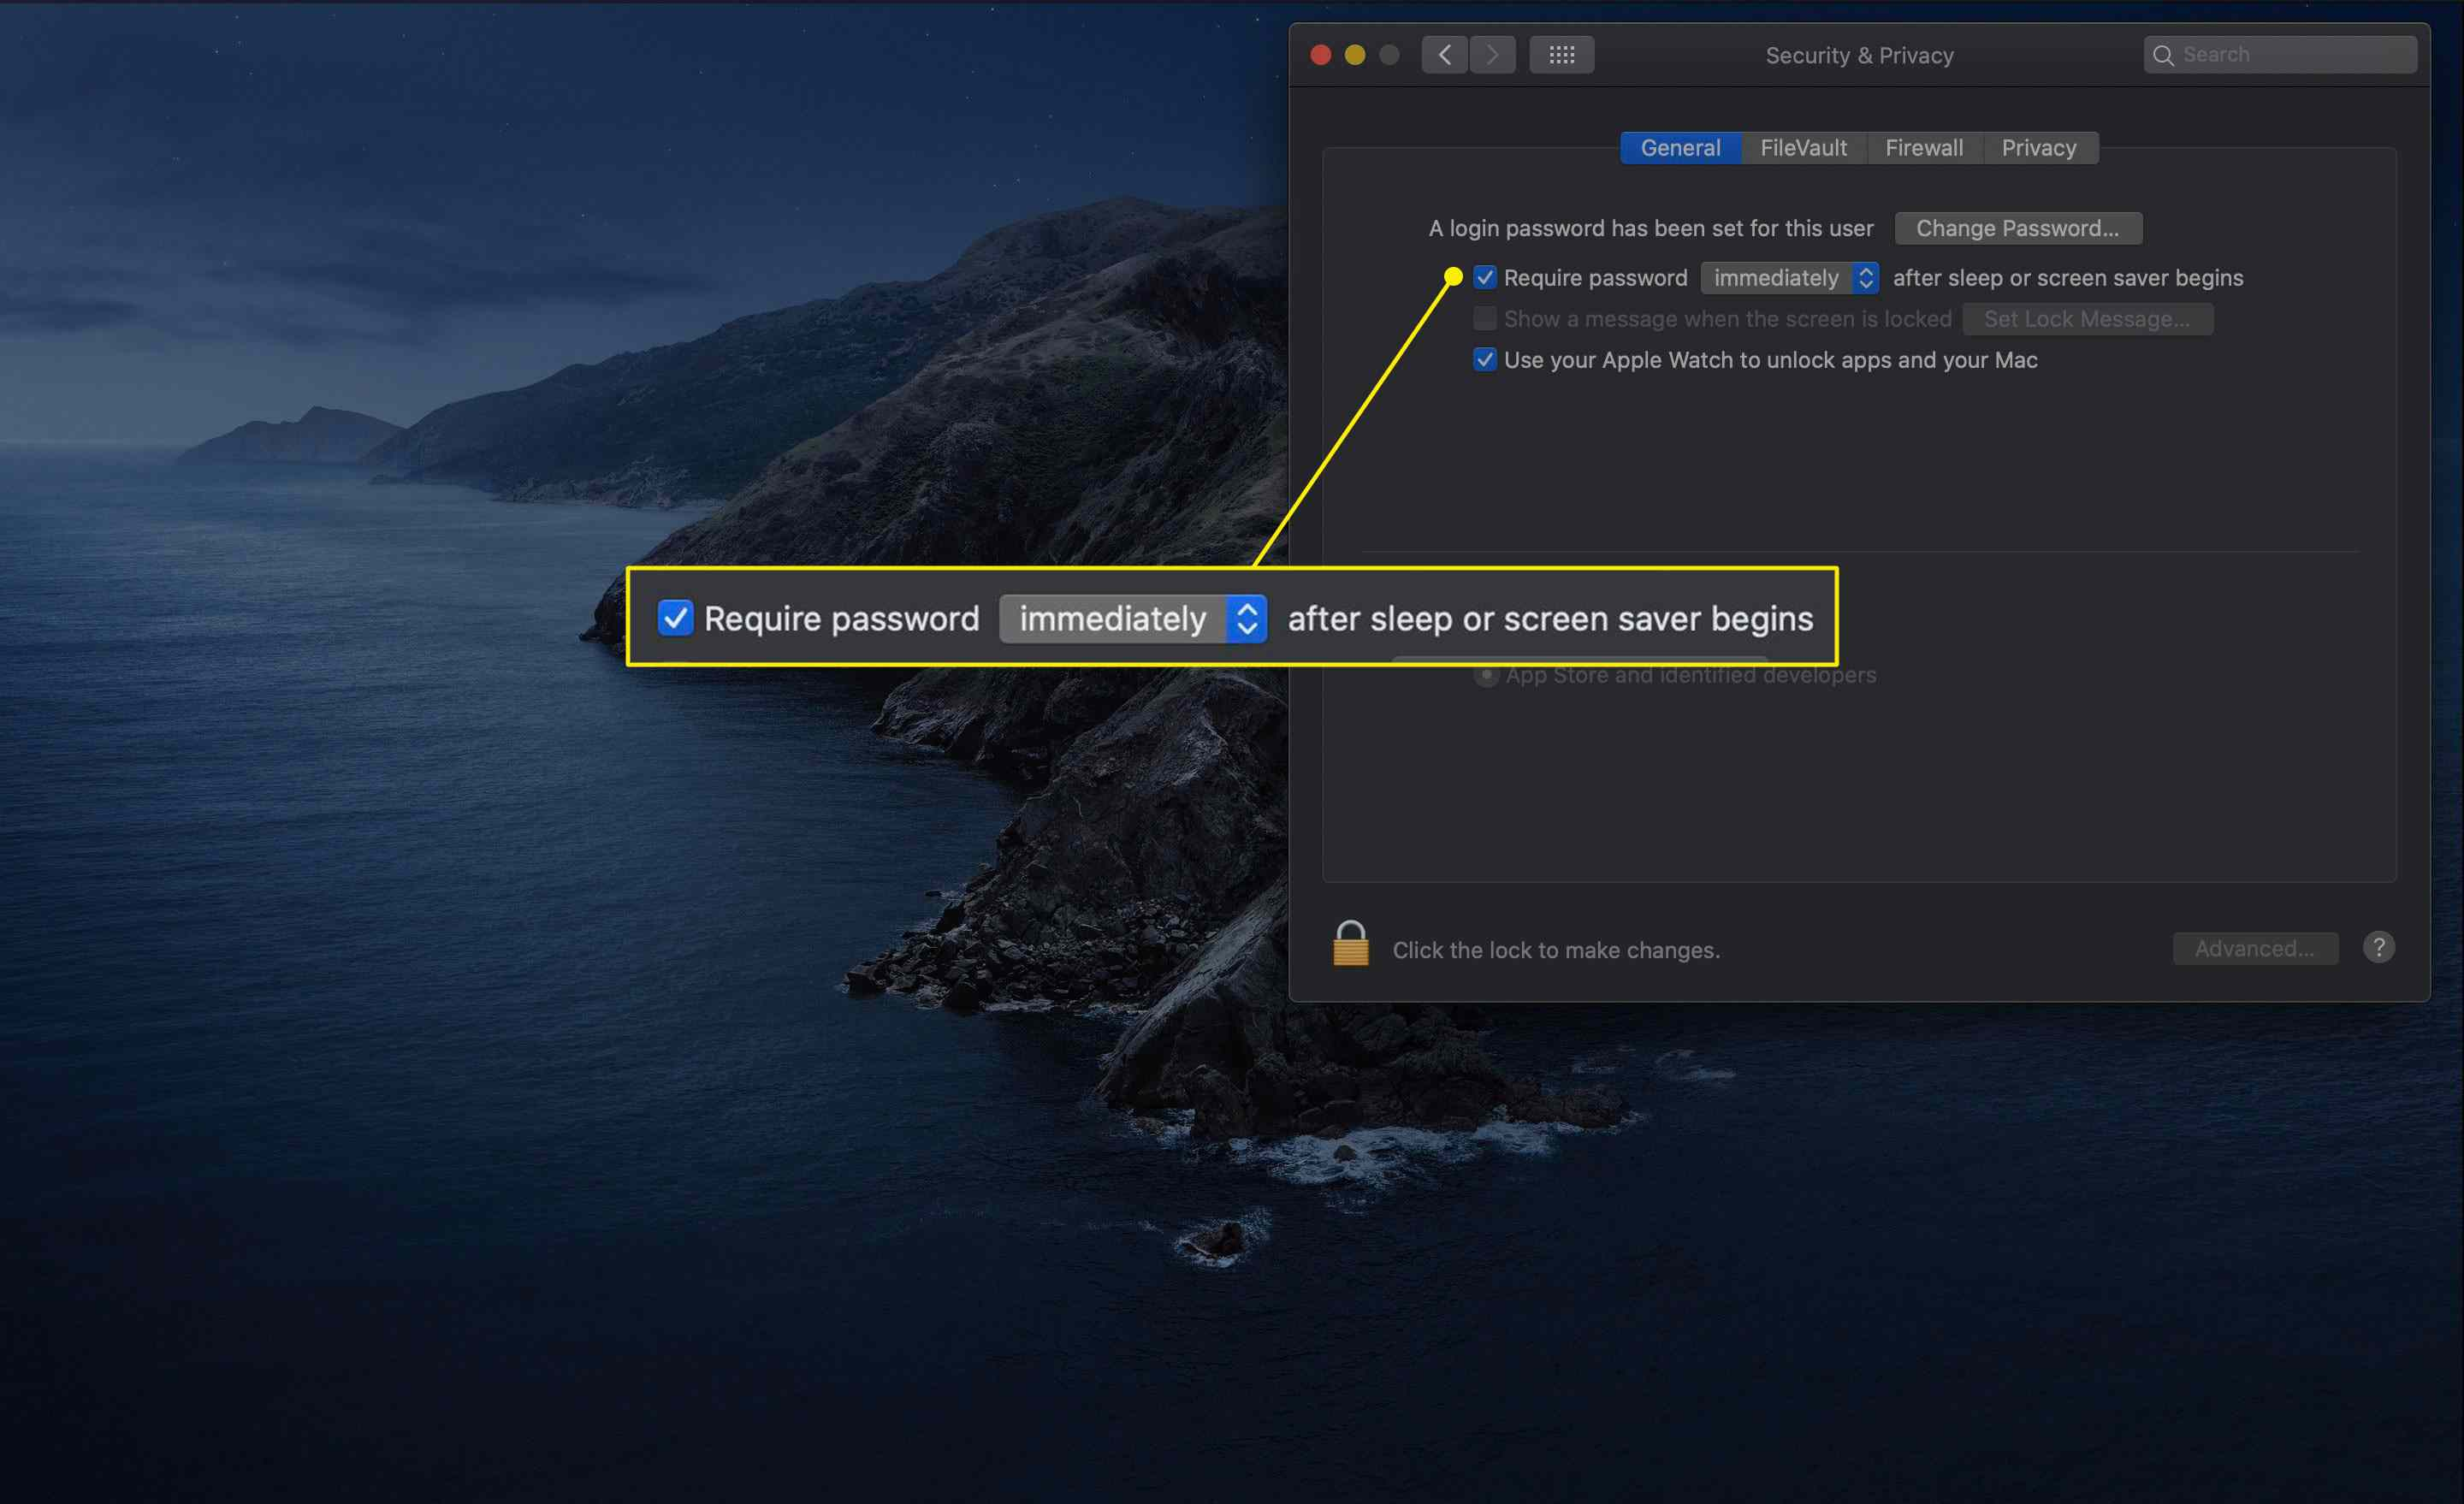 The Require Password setting in macOS